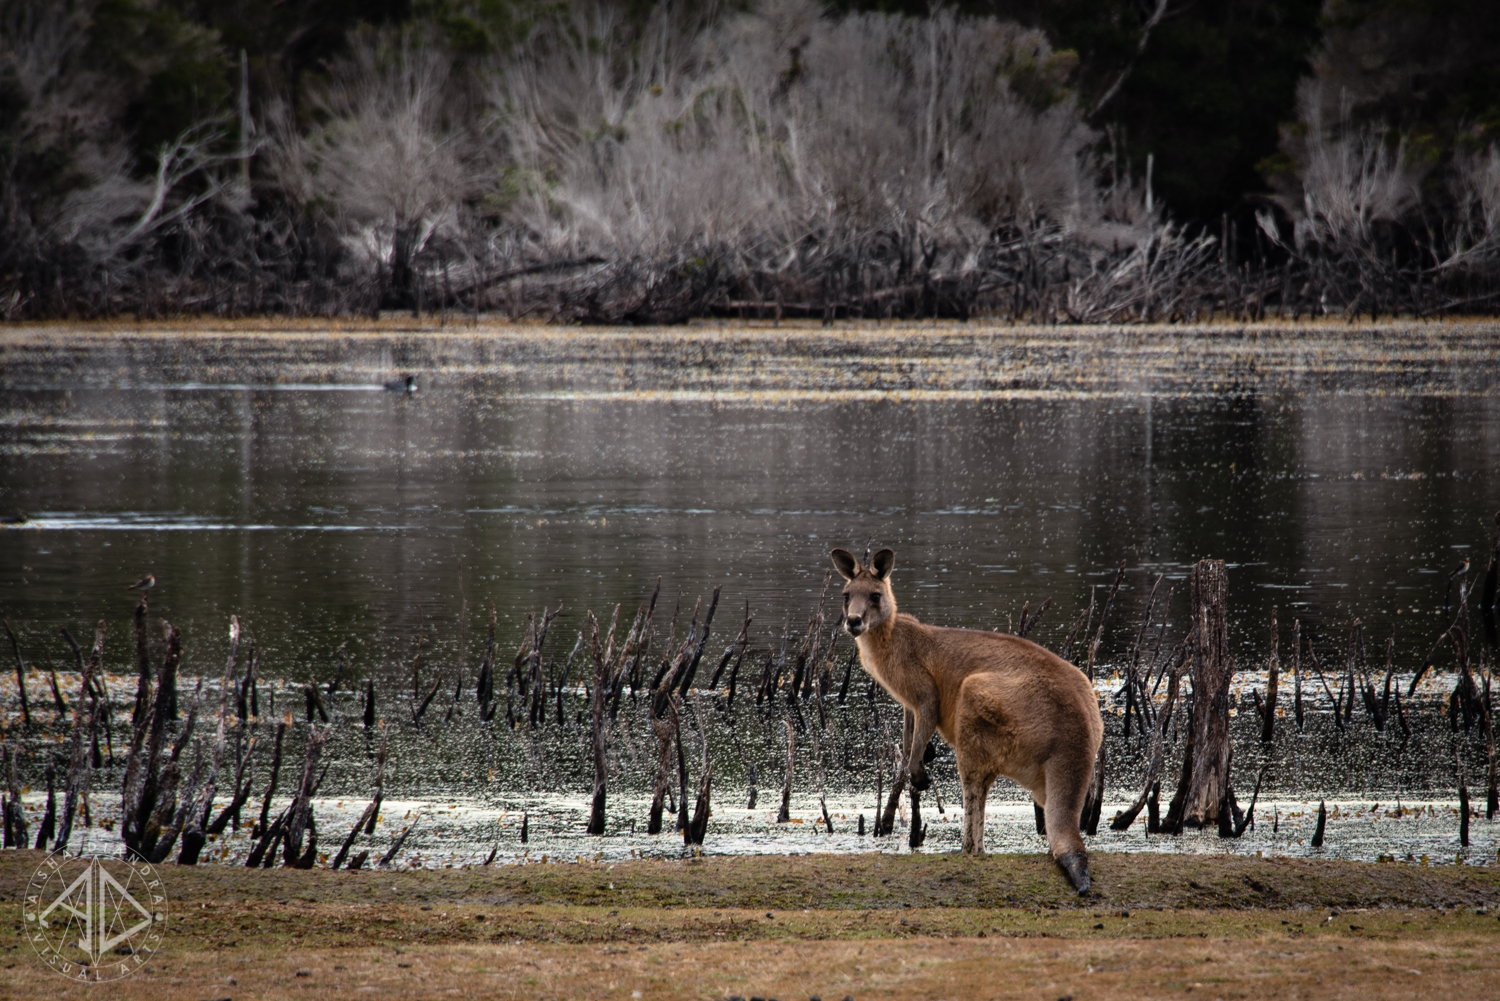 Kangaroo at Narawntapu National Park.  Click to view the rest of the gallery.